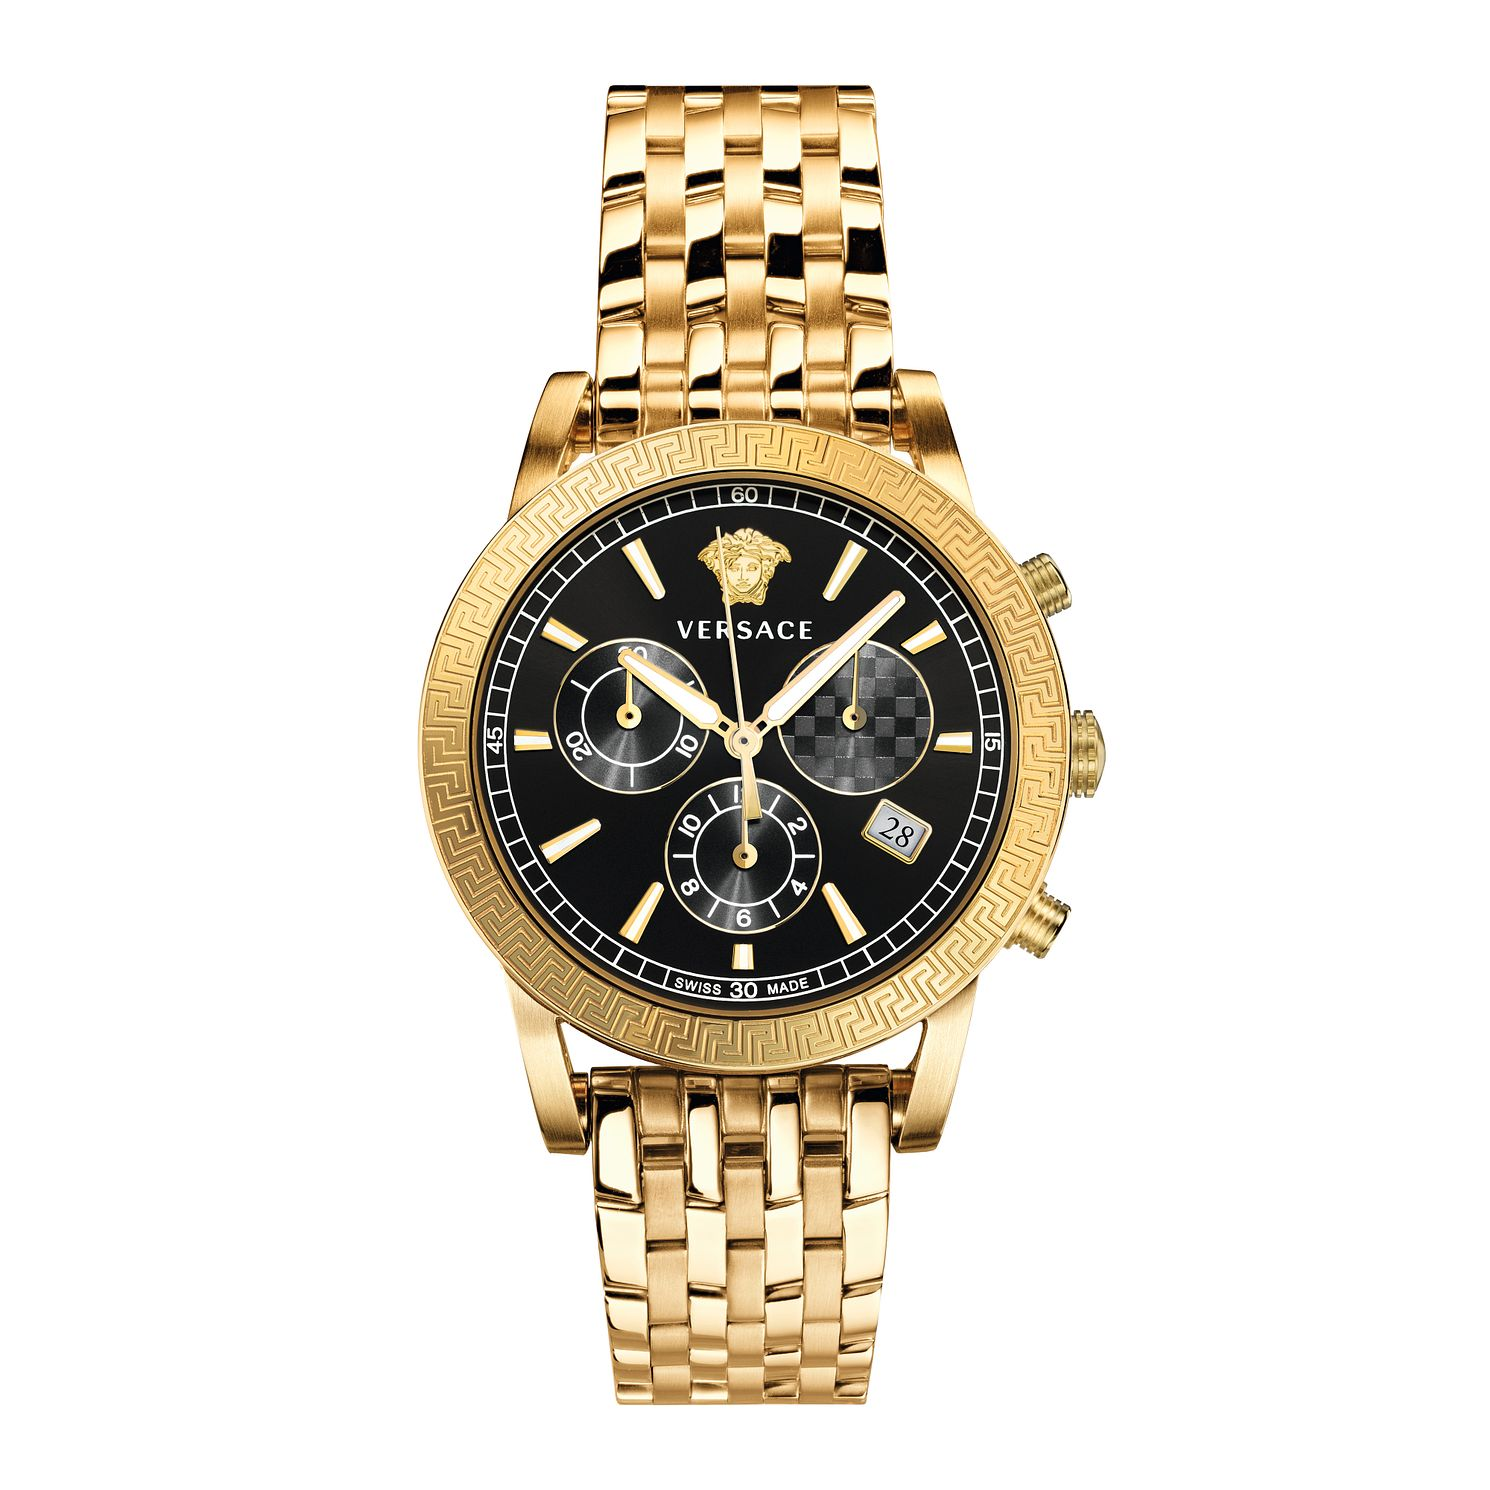 Versace Sport Tech Men's Yellow Gold Tone Bracelet Watch - Product number 5823048